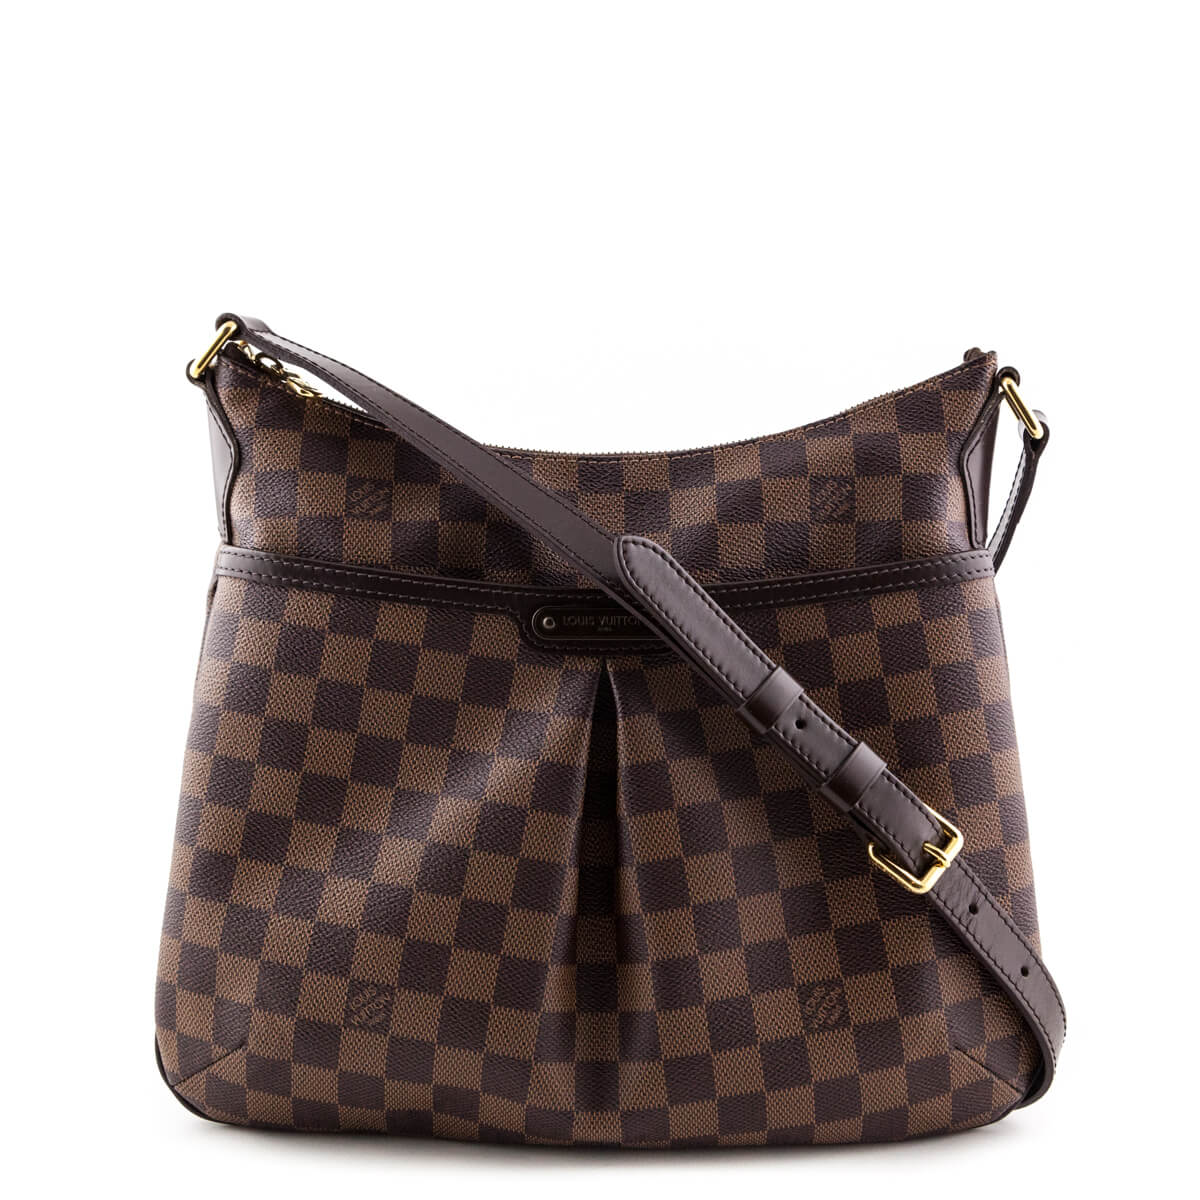 9c022f034a Louis Vuitton Damier Ebene Bloomsbury PM - LOVE that BAG - Preowned  Authentic Designer Handbags ...